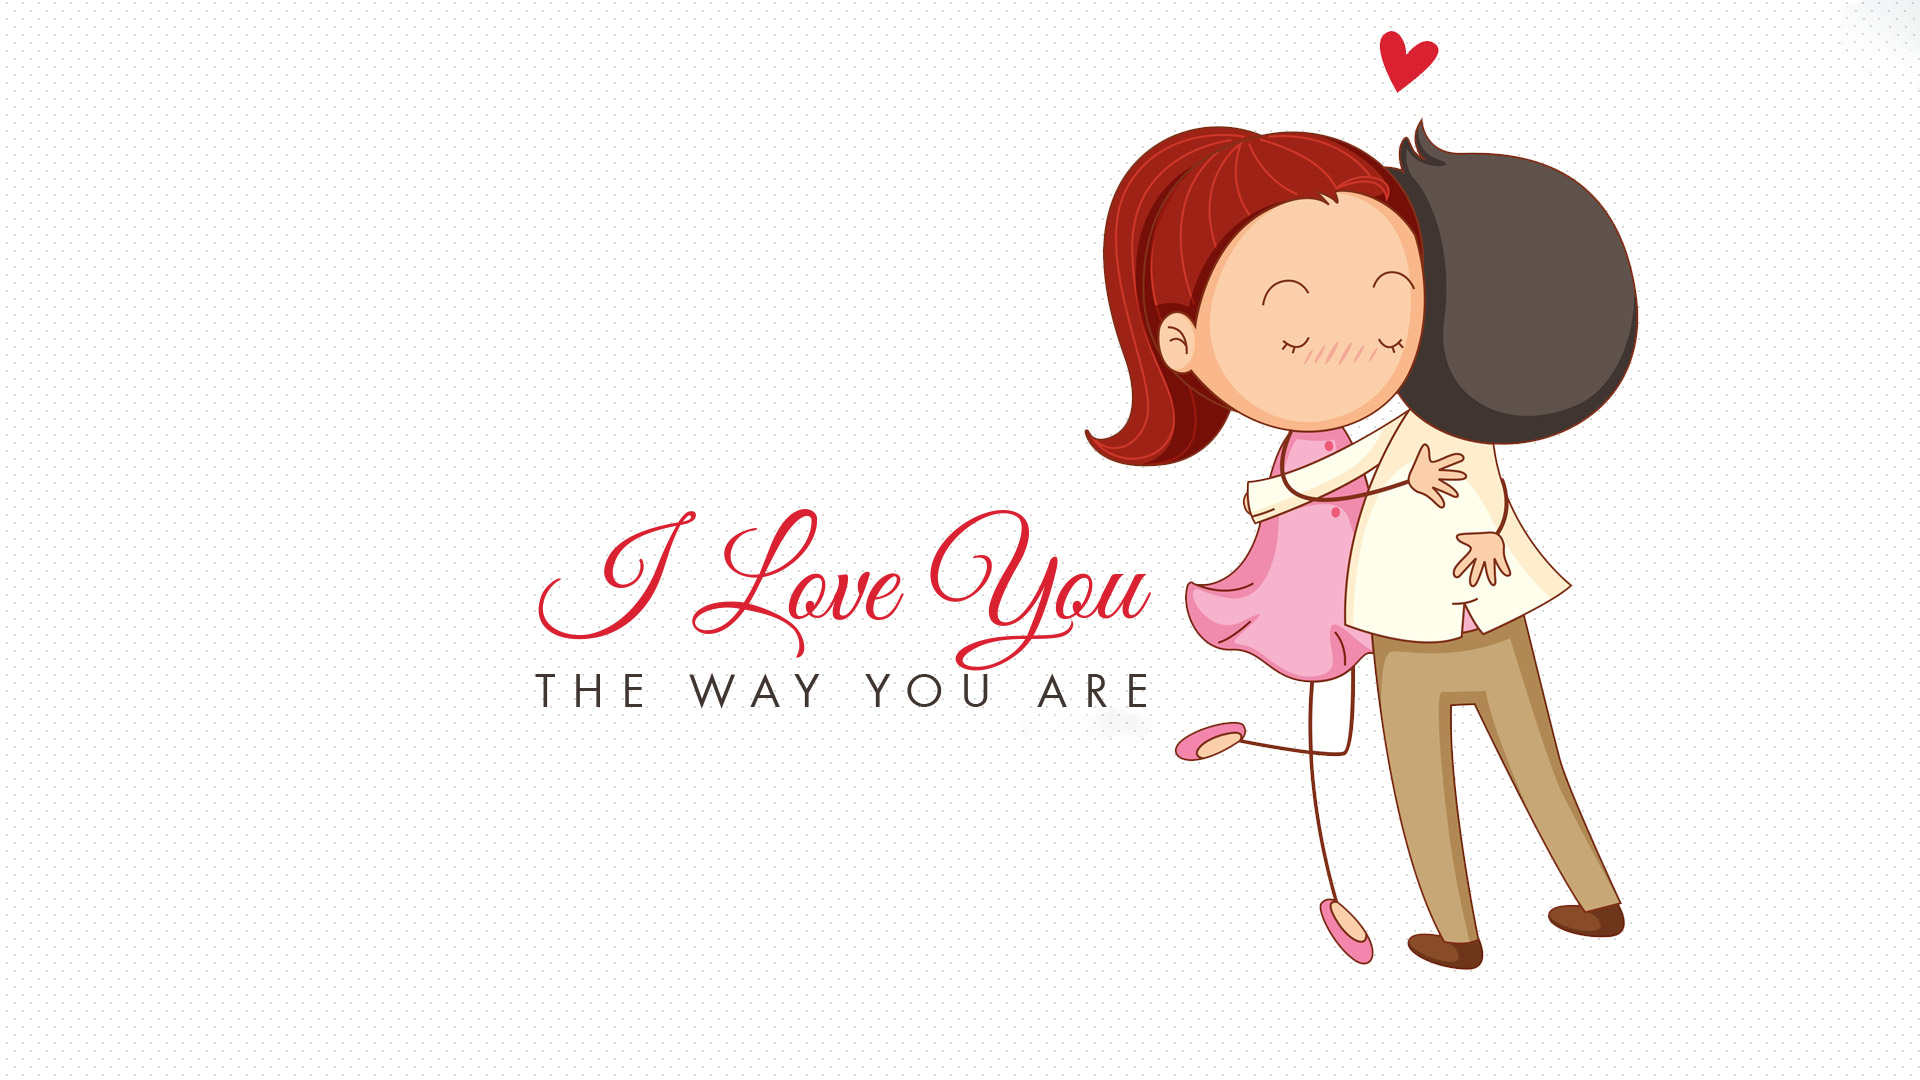 Love cartoon Wallpaper For Mobile : Top 150+ Beautiful cute Romantic Love couple HD Wallpaper